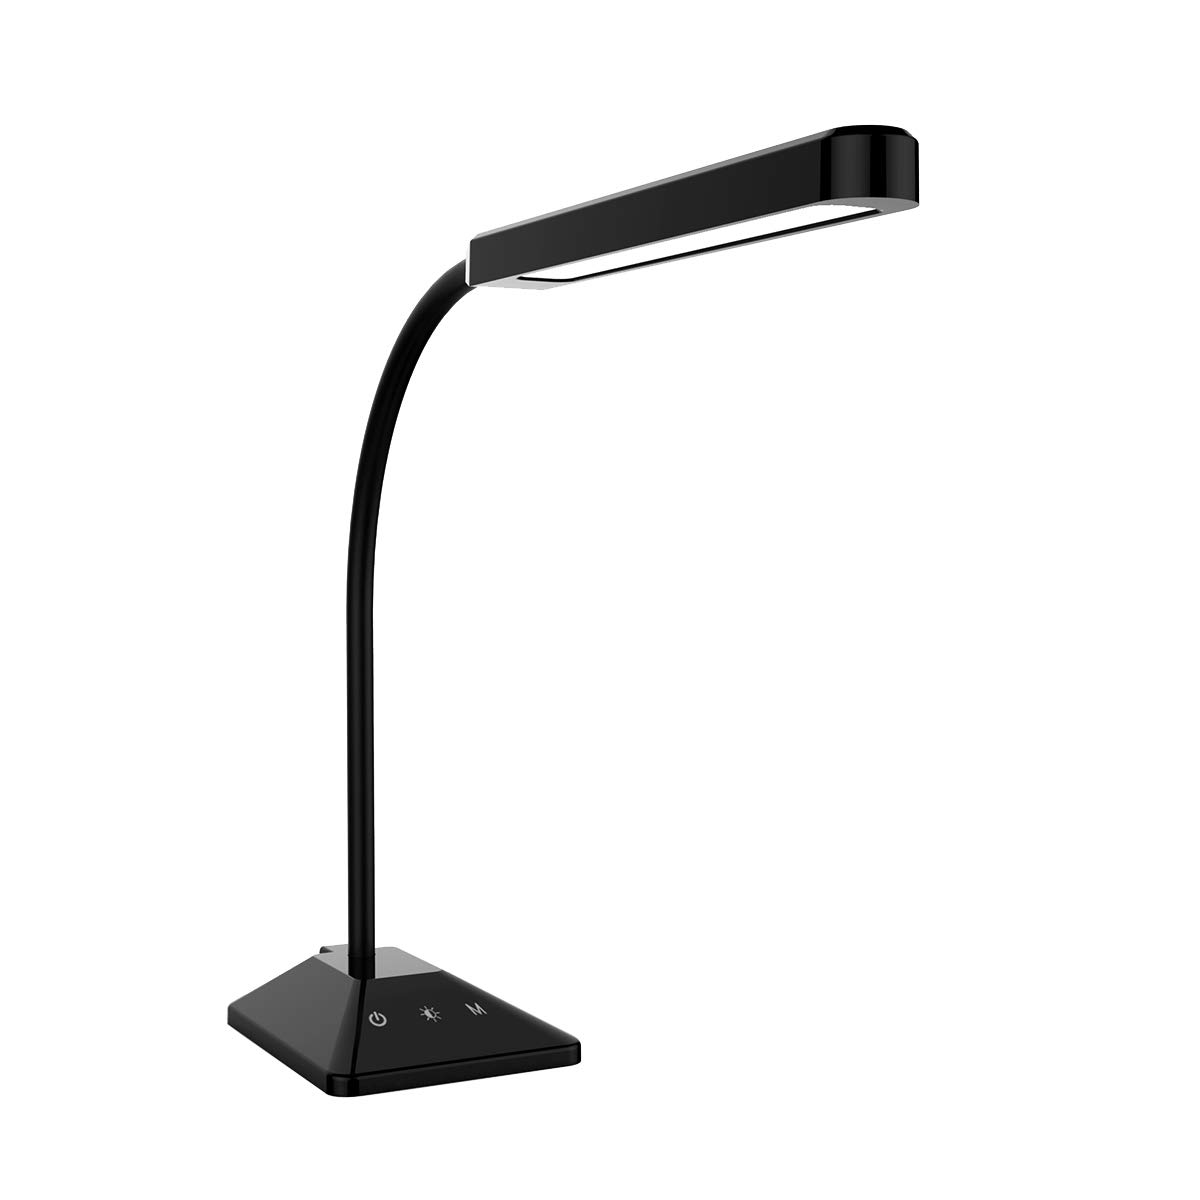 LED Desk Lamp Flexible Gooseneck Table Lamp with Touch Control 5 Brightness Levels Adjustable Night Light Eye-Caring Dimmable Table Light Black